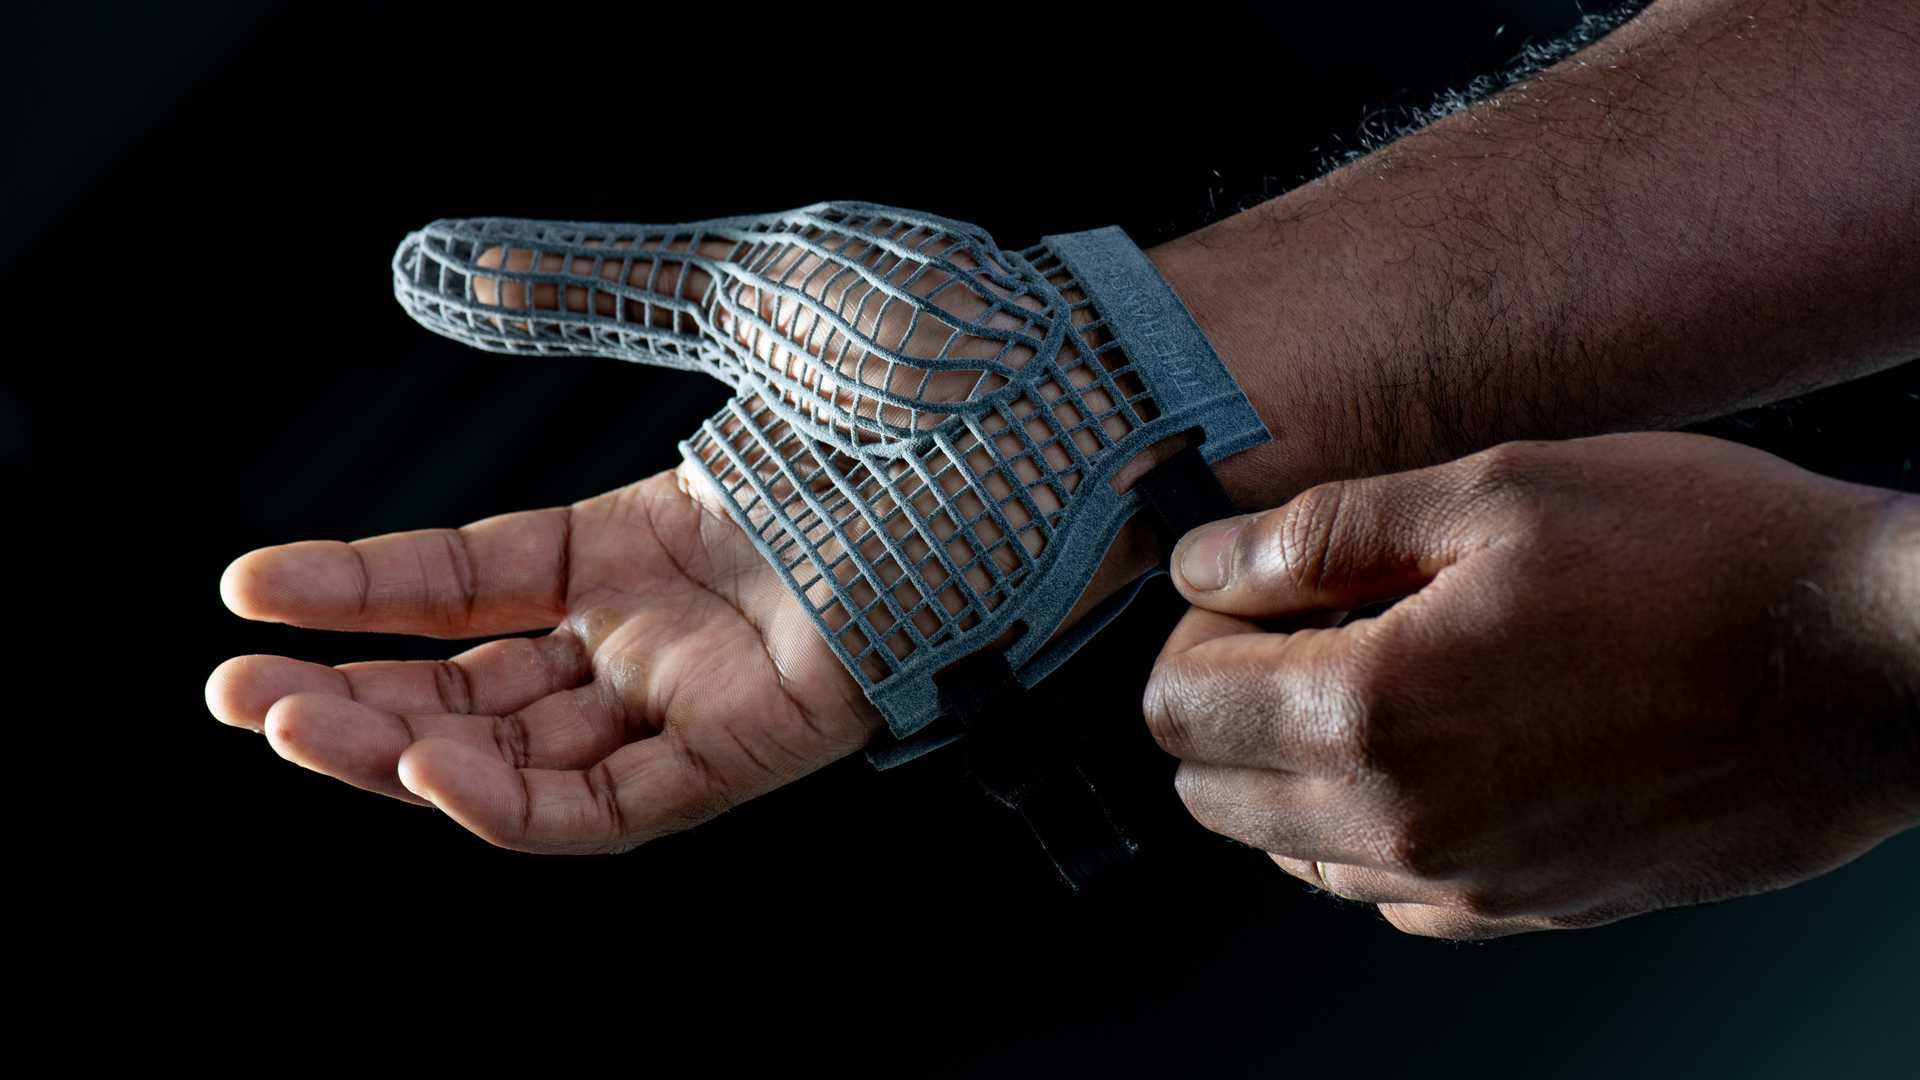 Jaguar Land Rover designs special 3D printed gloves for line workers